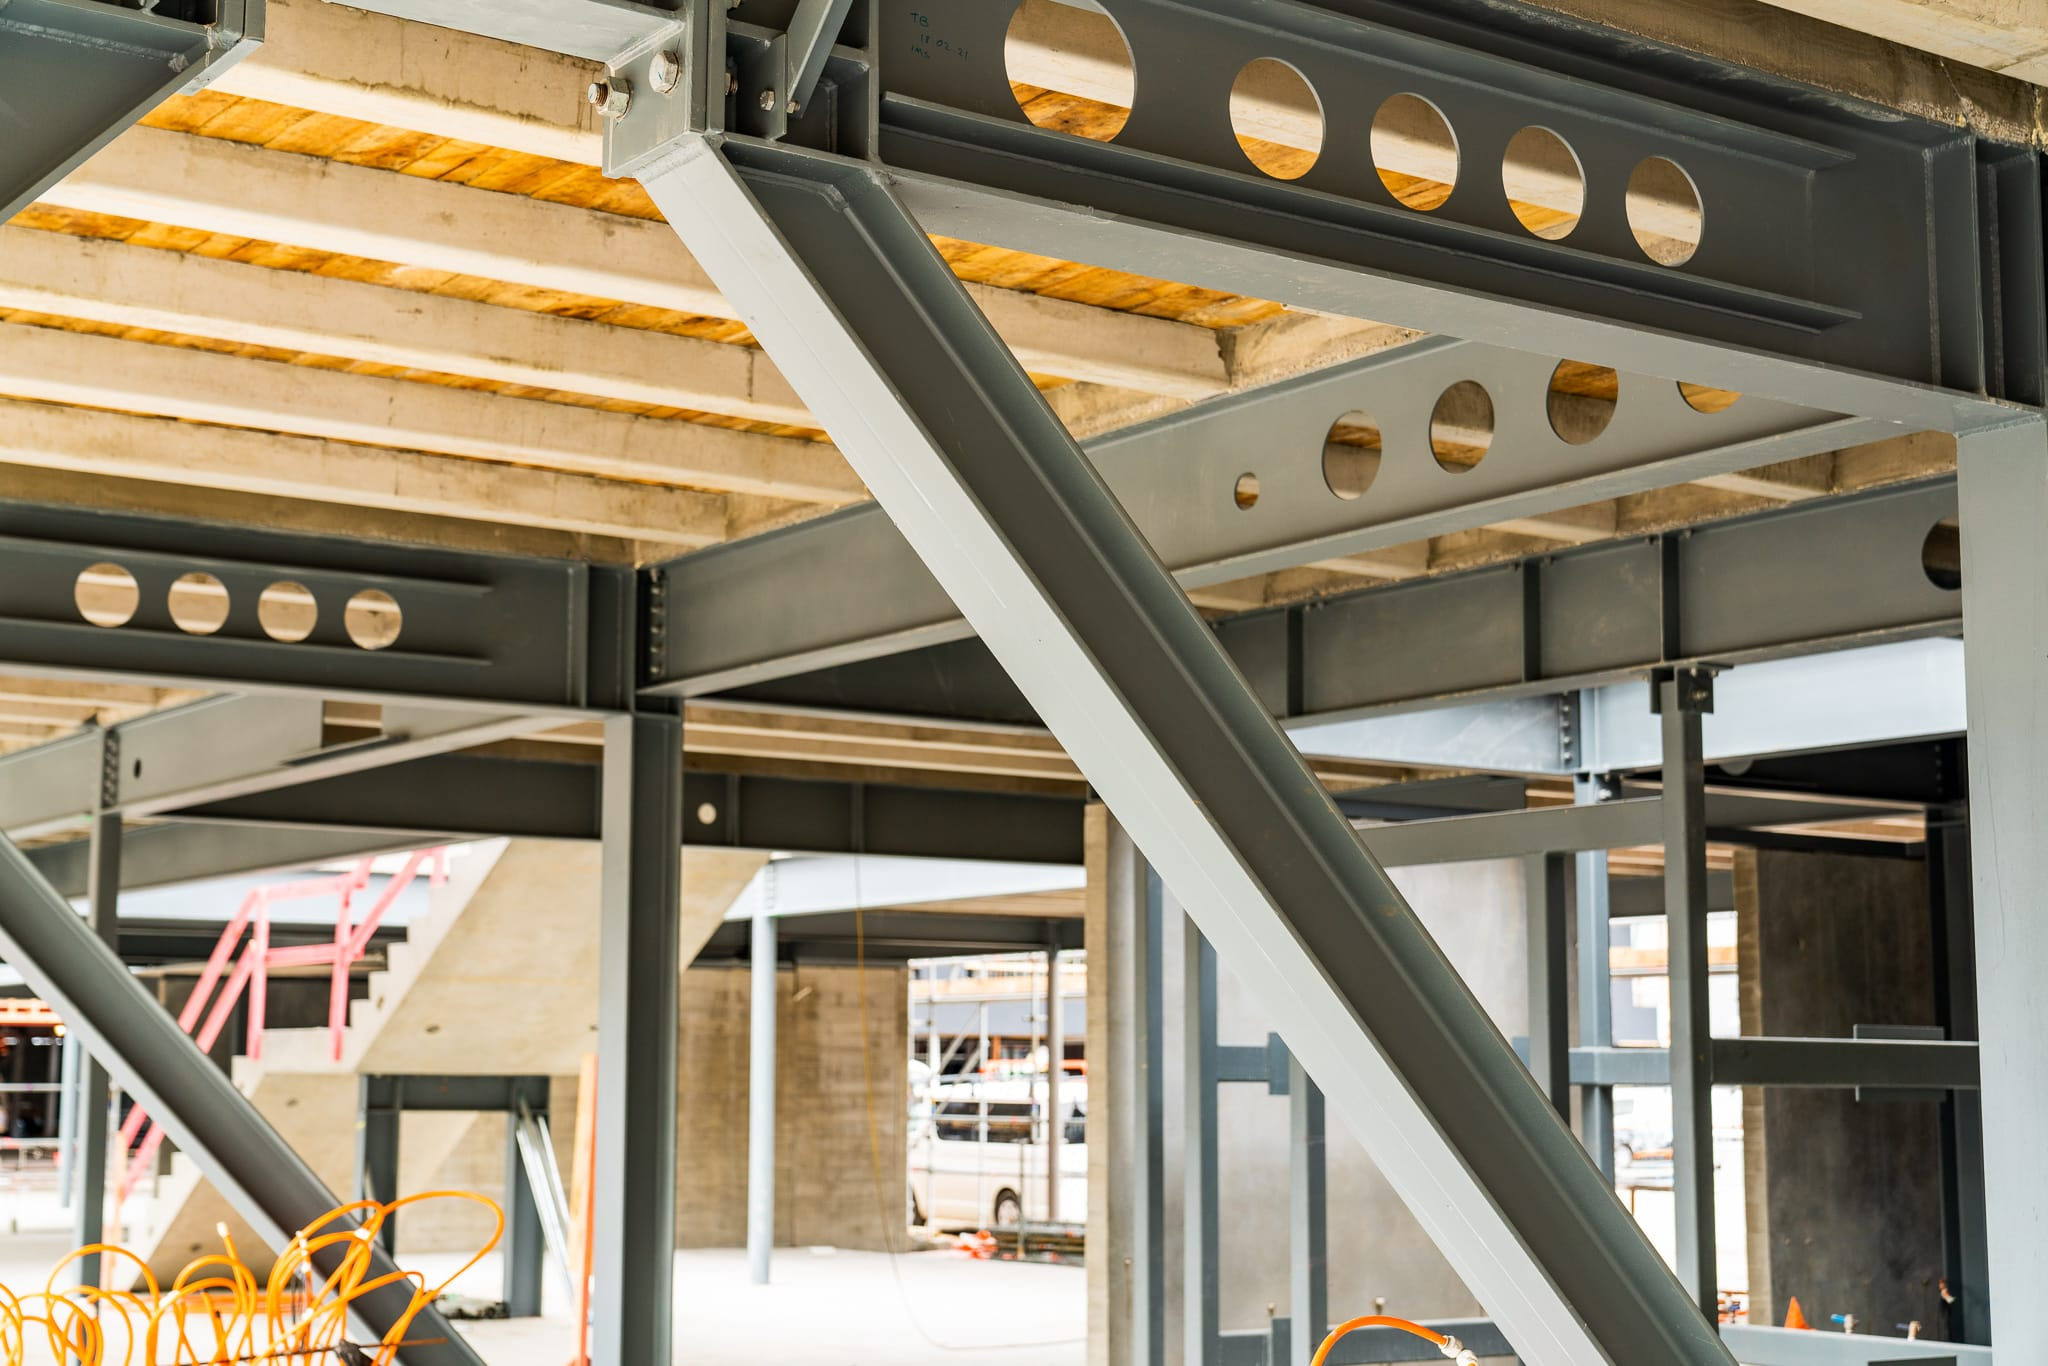 vip_structural_steel_linwood_college_23:4:21_small_95